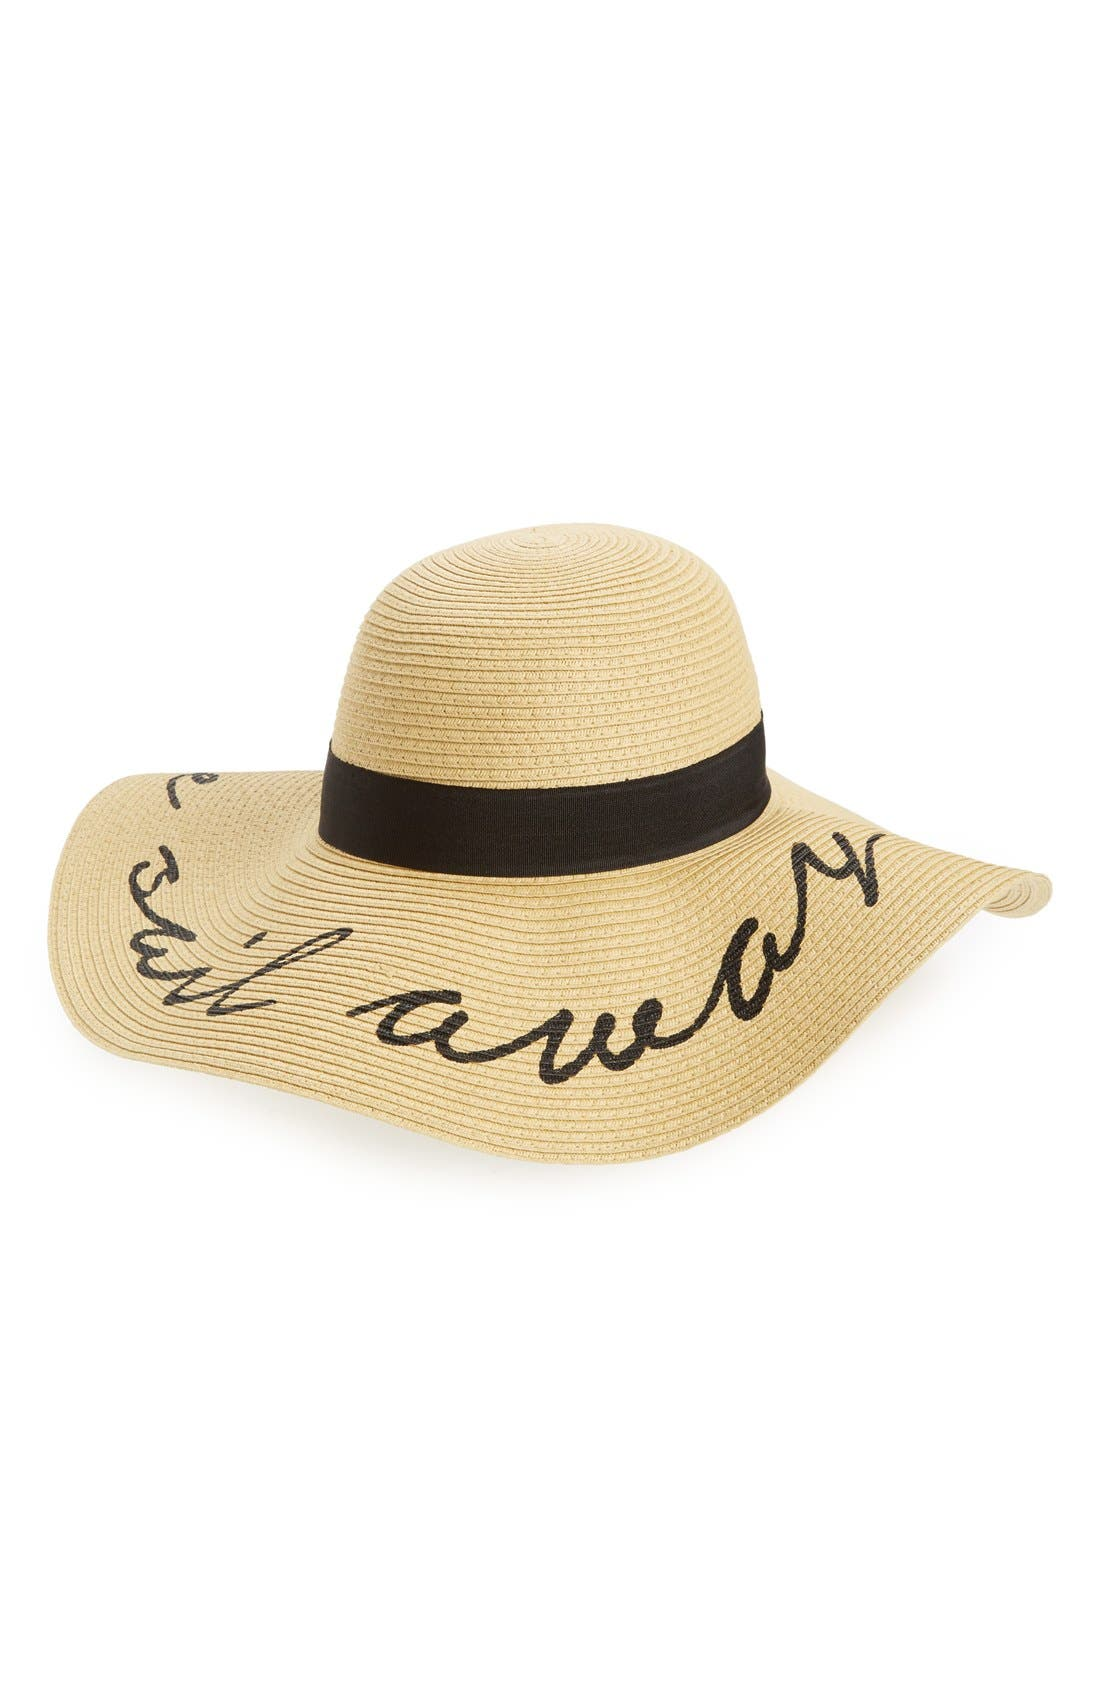 Alternate Image 1 Selected - BP. 'Come Sail Away' Floppy Straw Hat